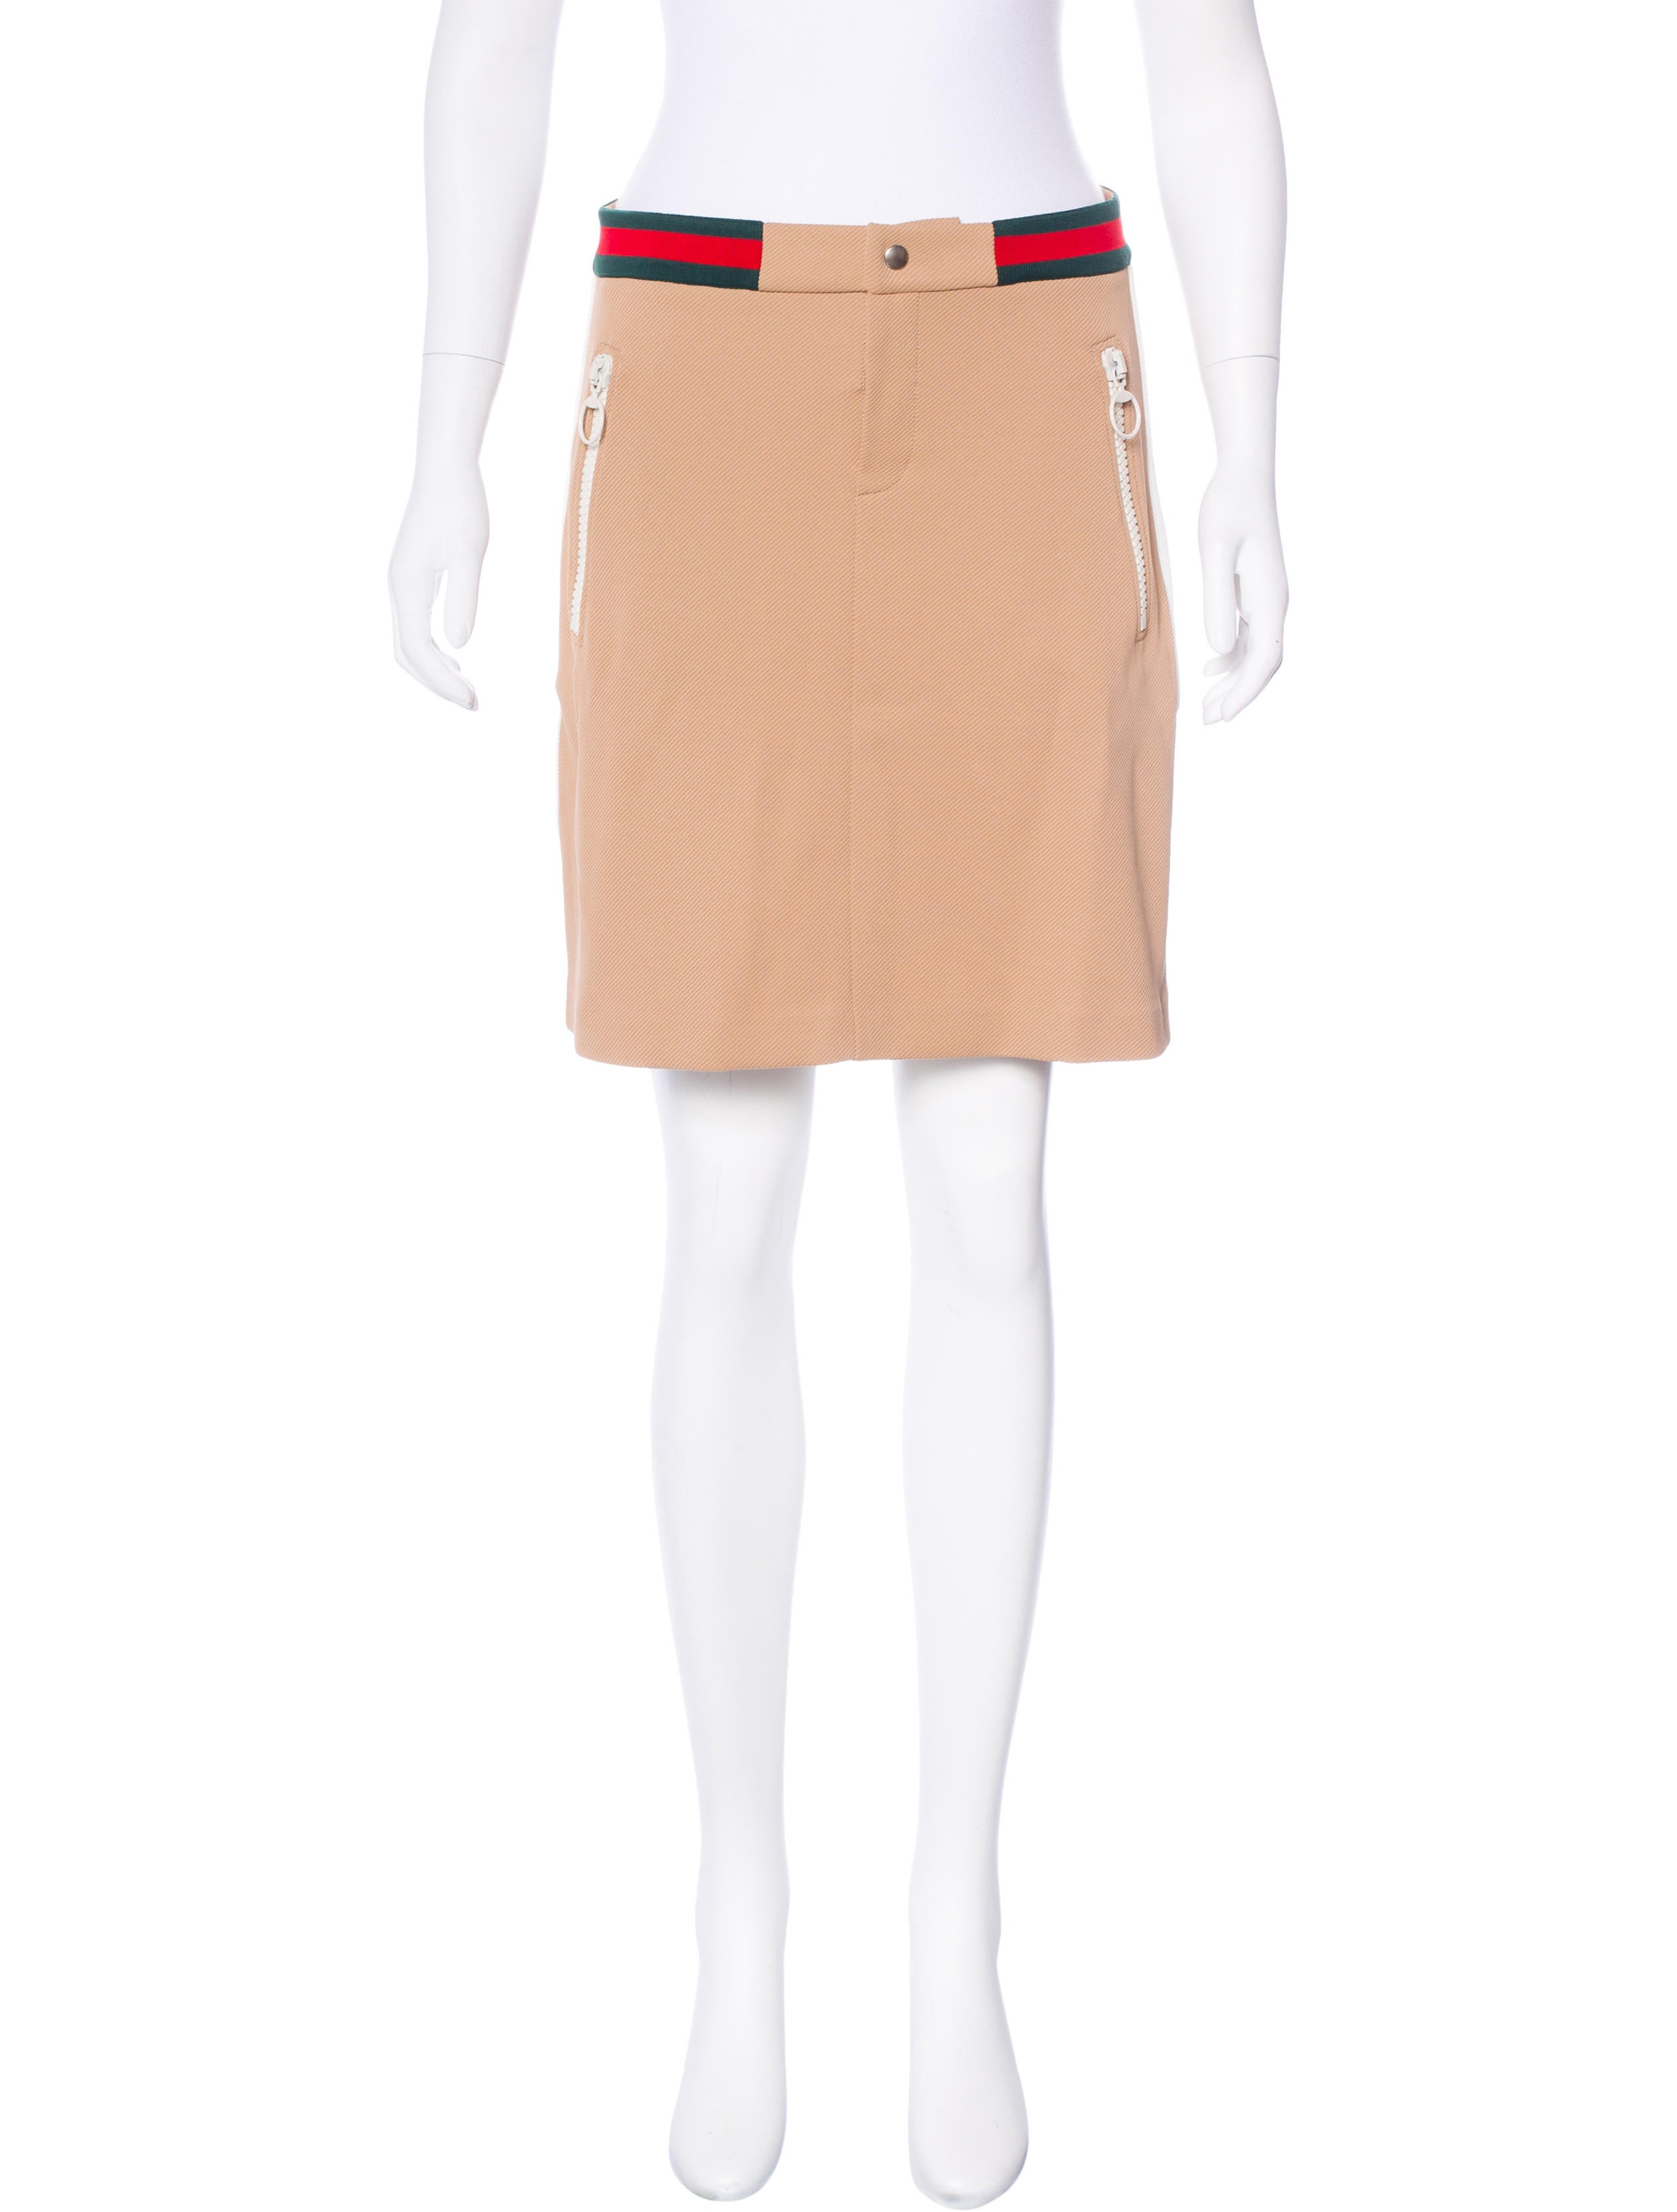 Gucci Textured Mini Skirt - Clothing - GUC153067 | The RealReal